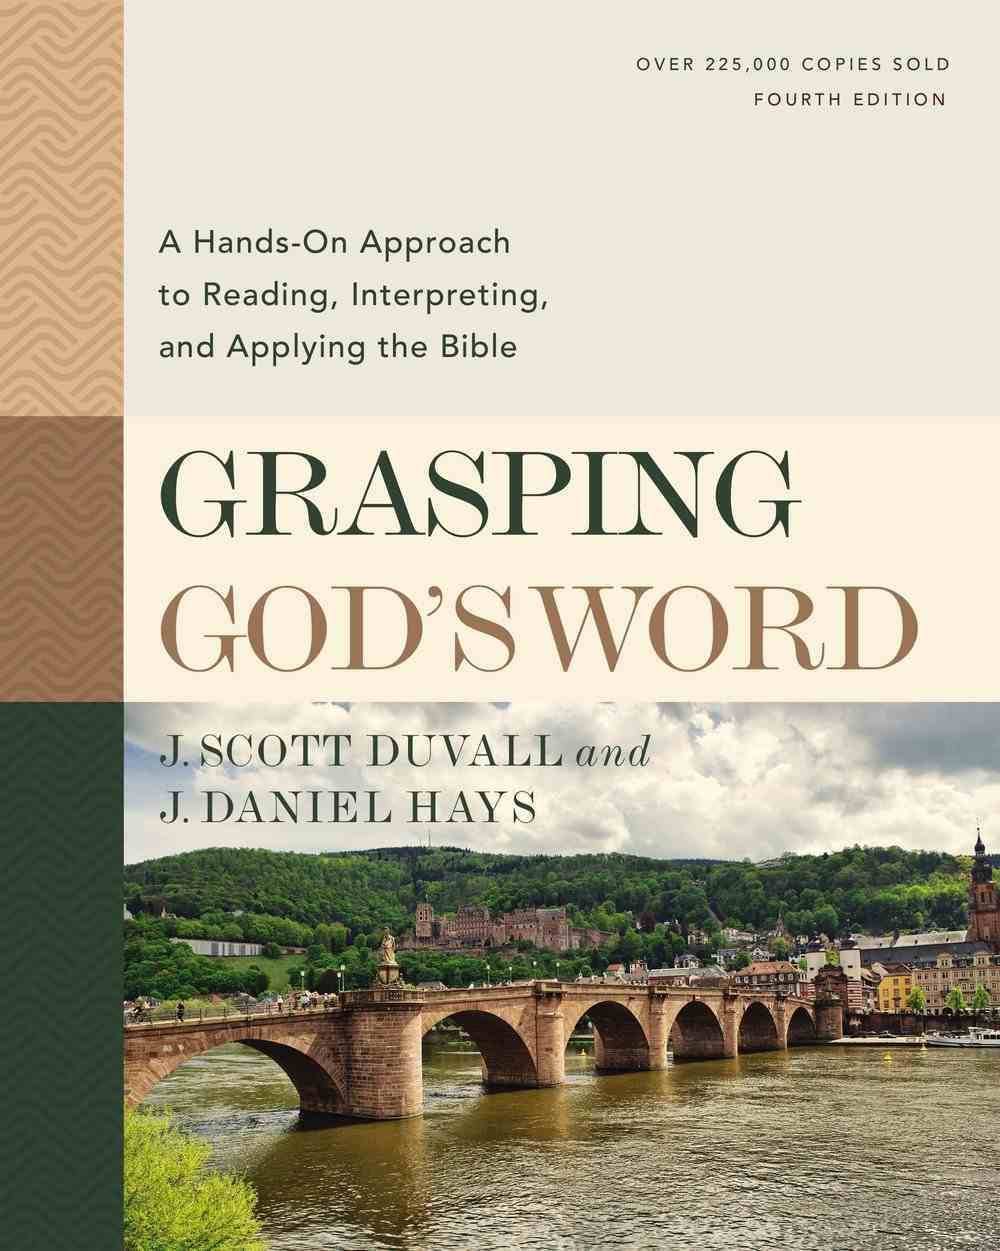 Grasping God's Word: A Hands-On Approach to Reading, Interpreting, and Applying the Bible (4th Edition) Hardback